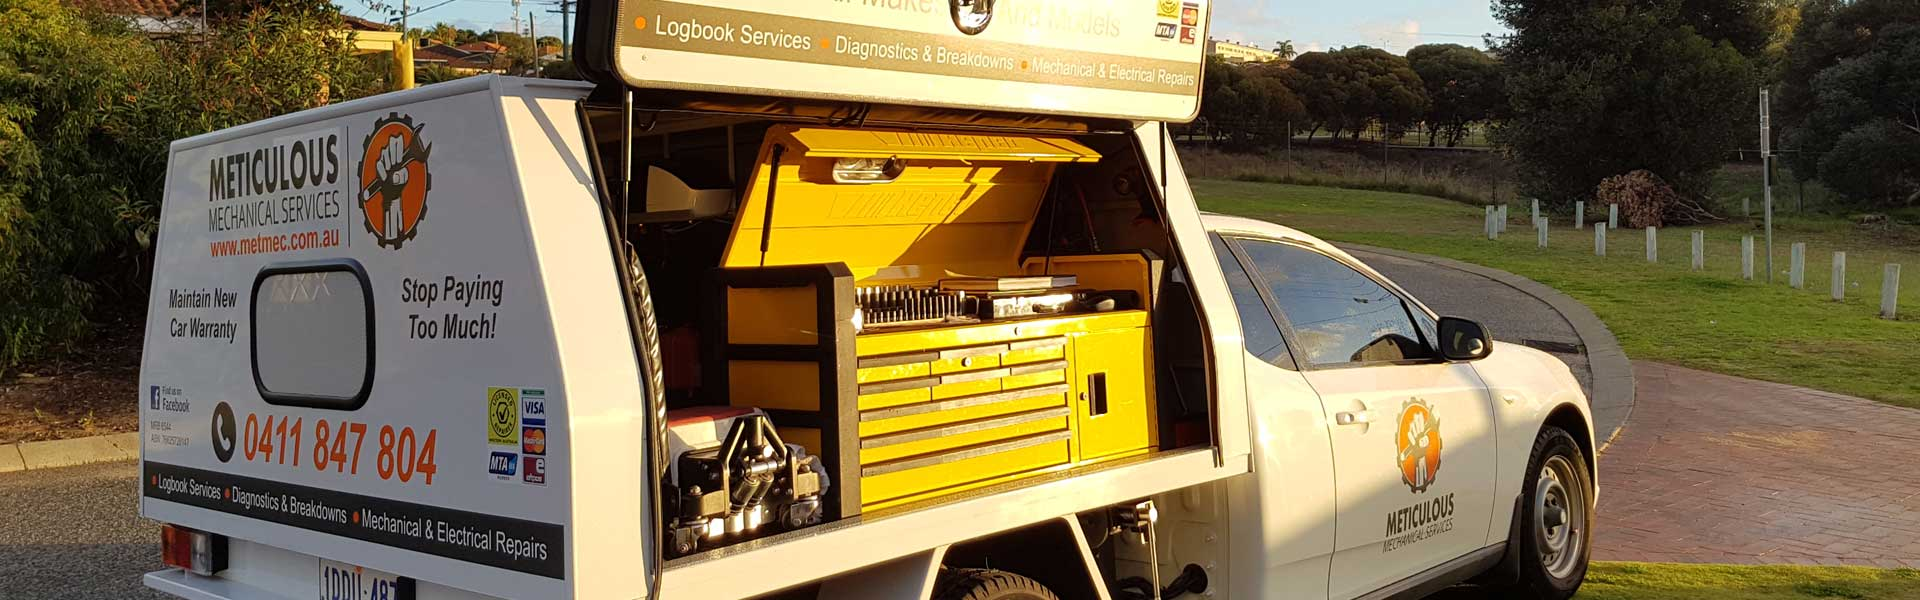 Meticulous Mechanical Services - Service Vehicle Tools Wing